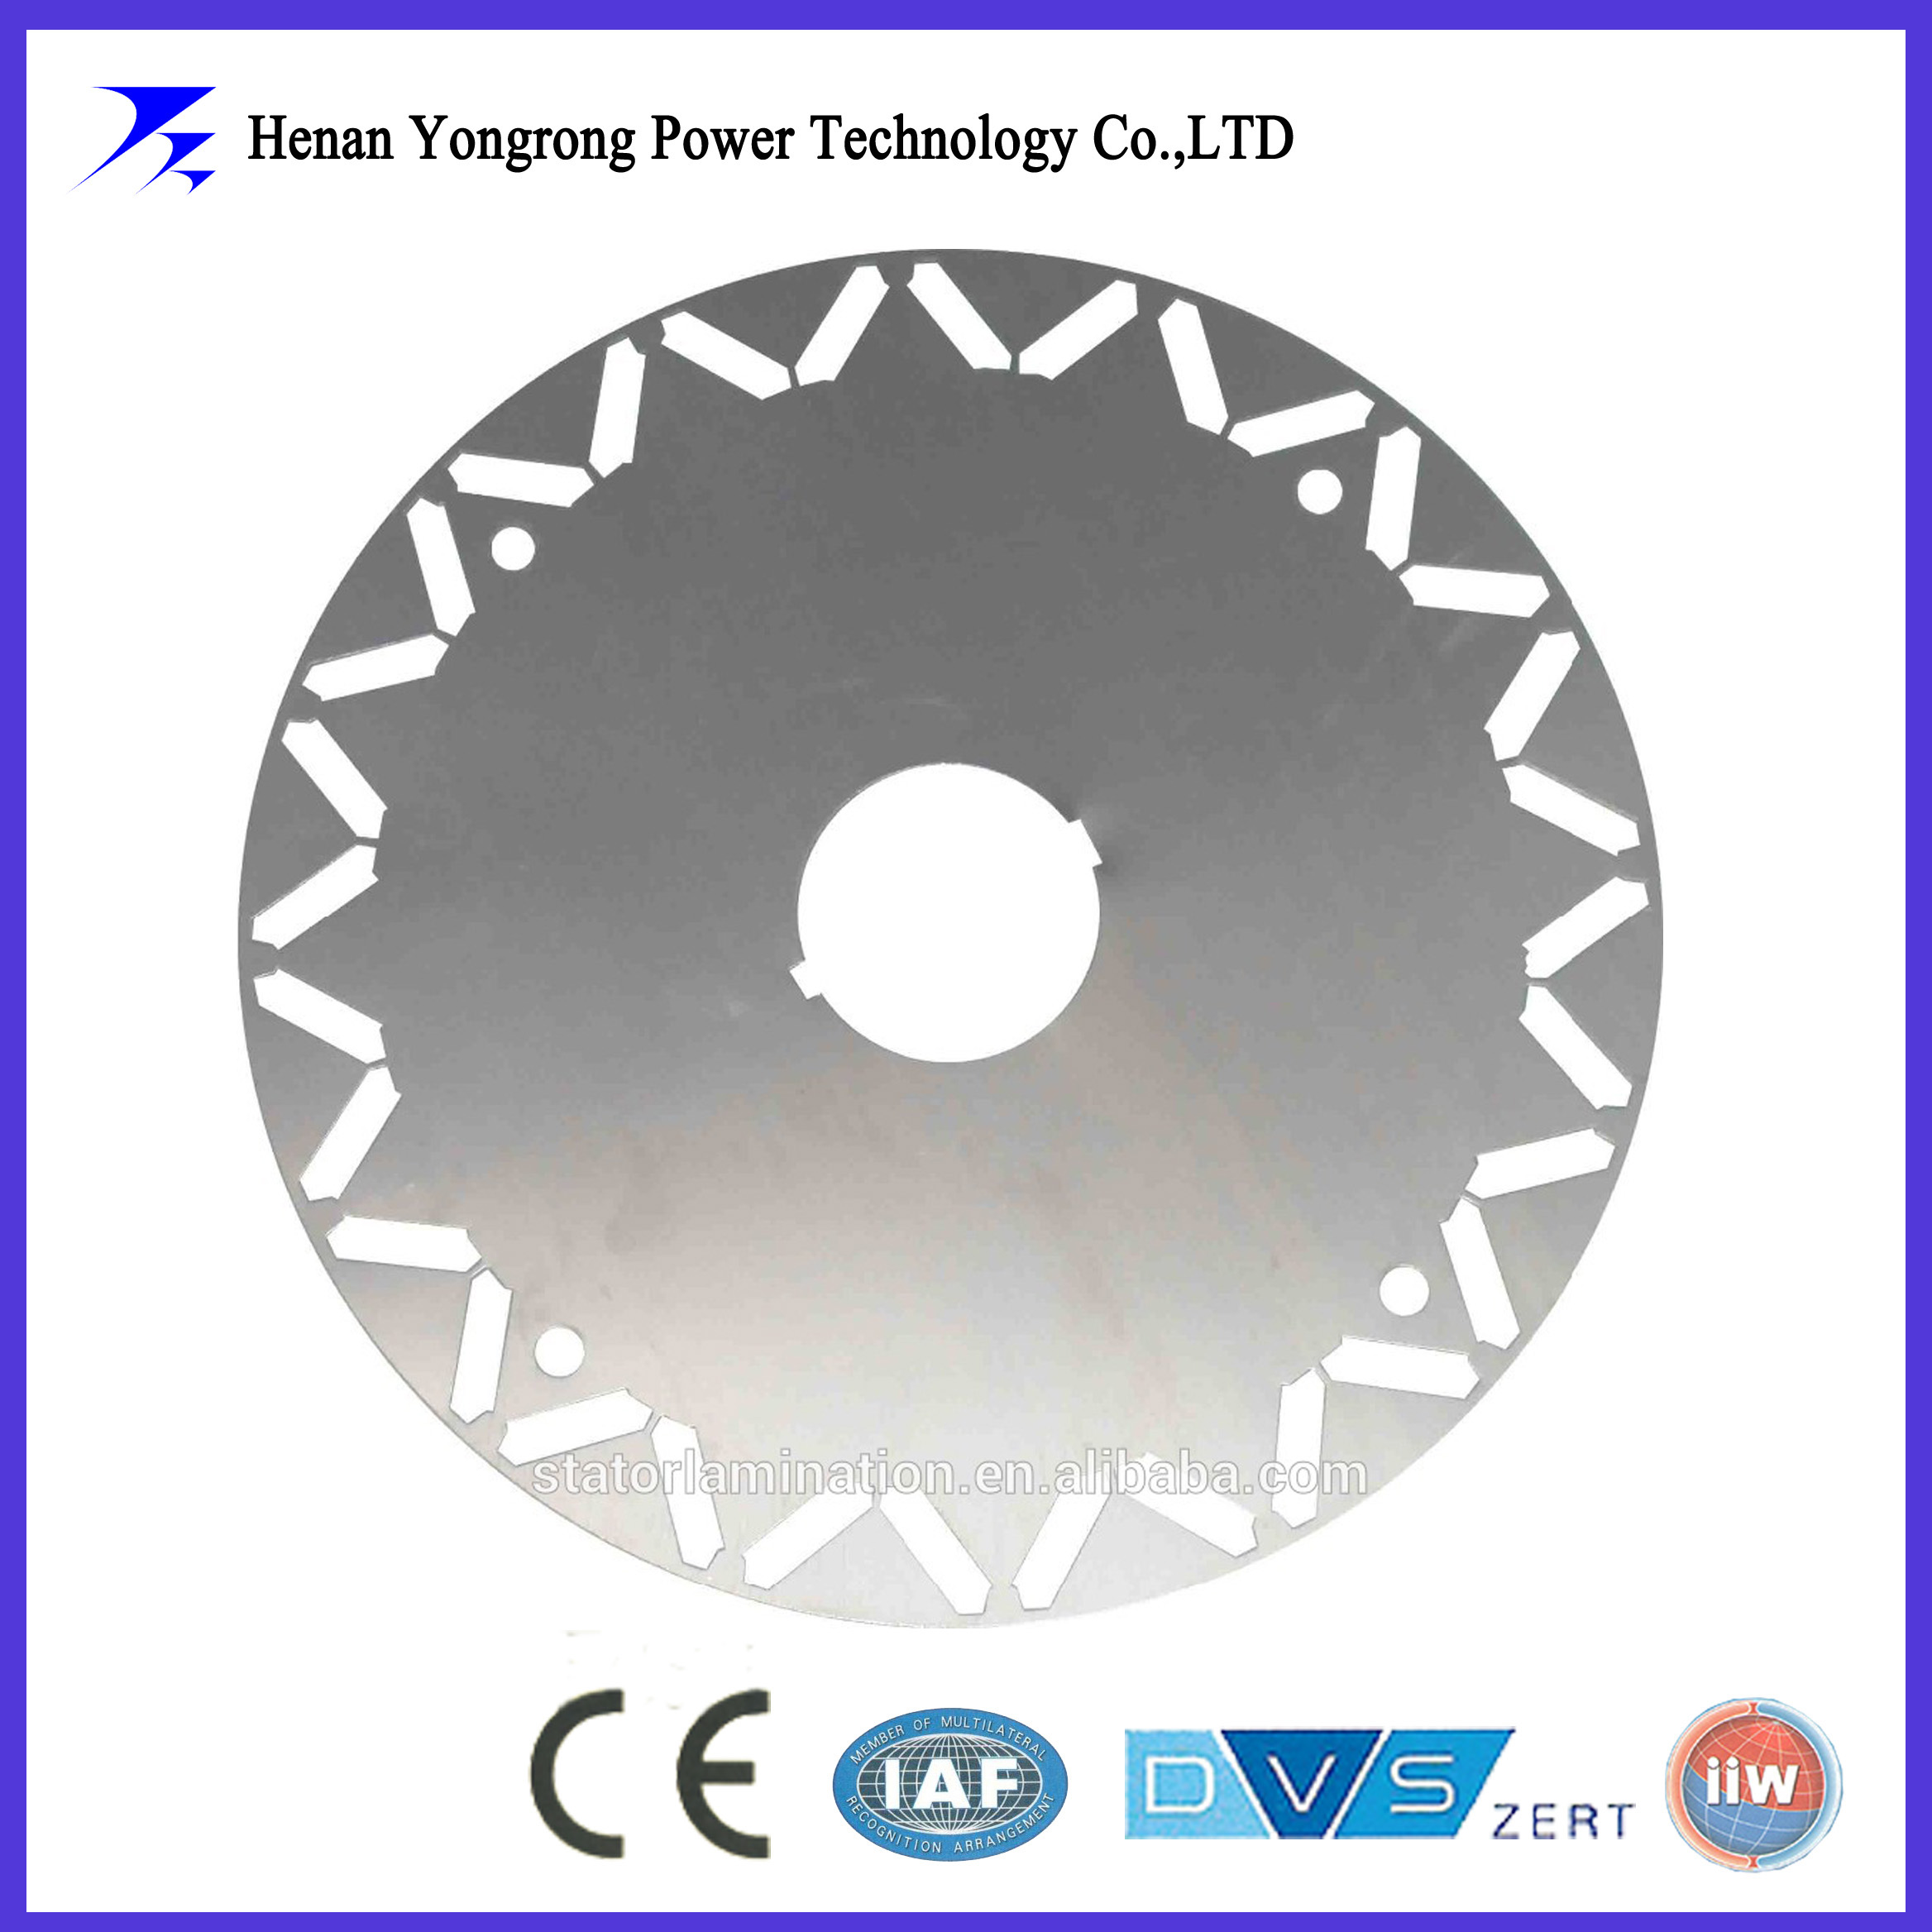 Stator and rotor lamination for permanent magnet motor